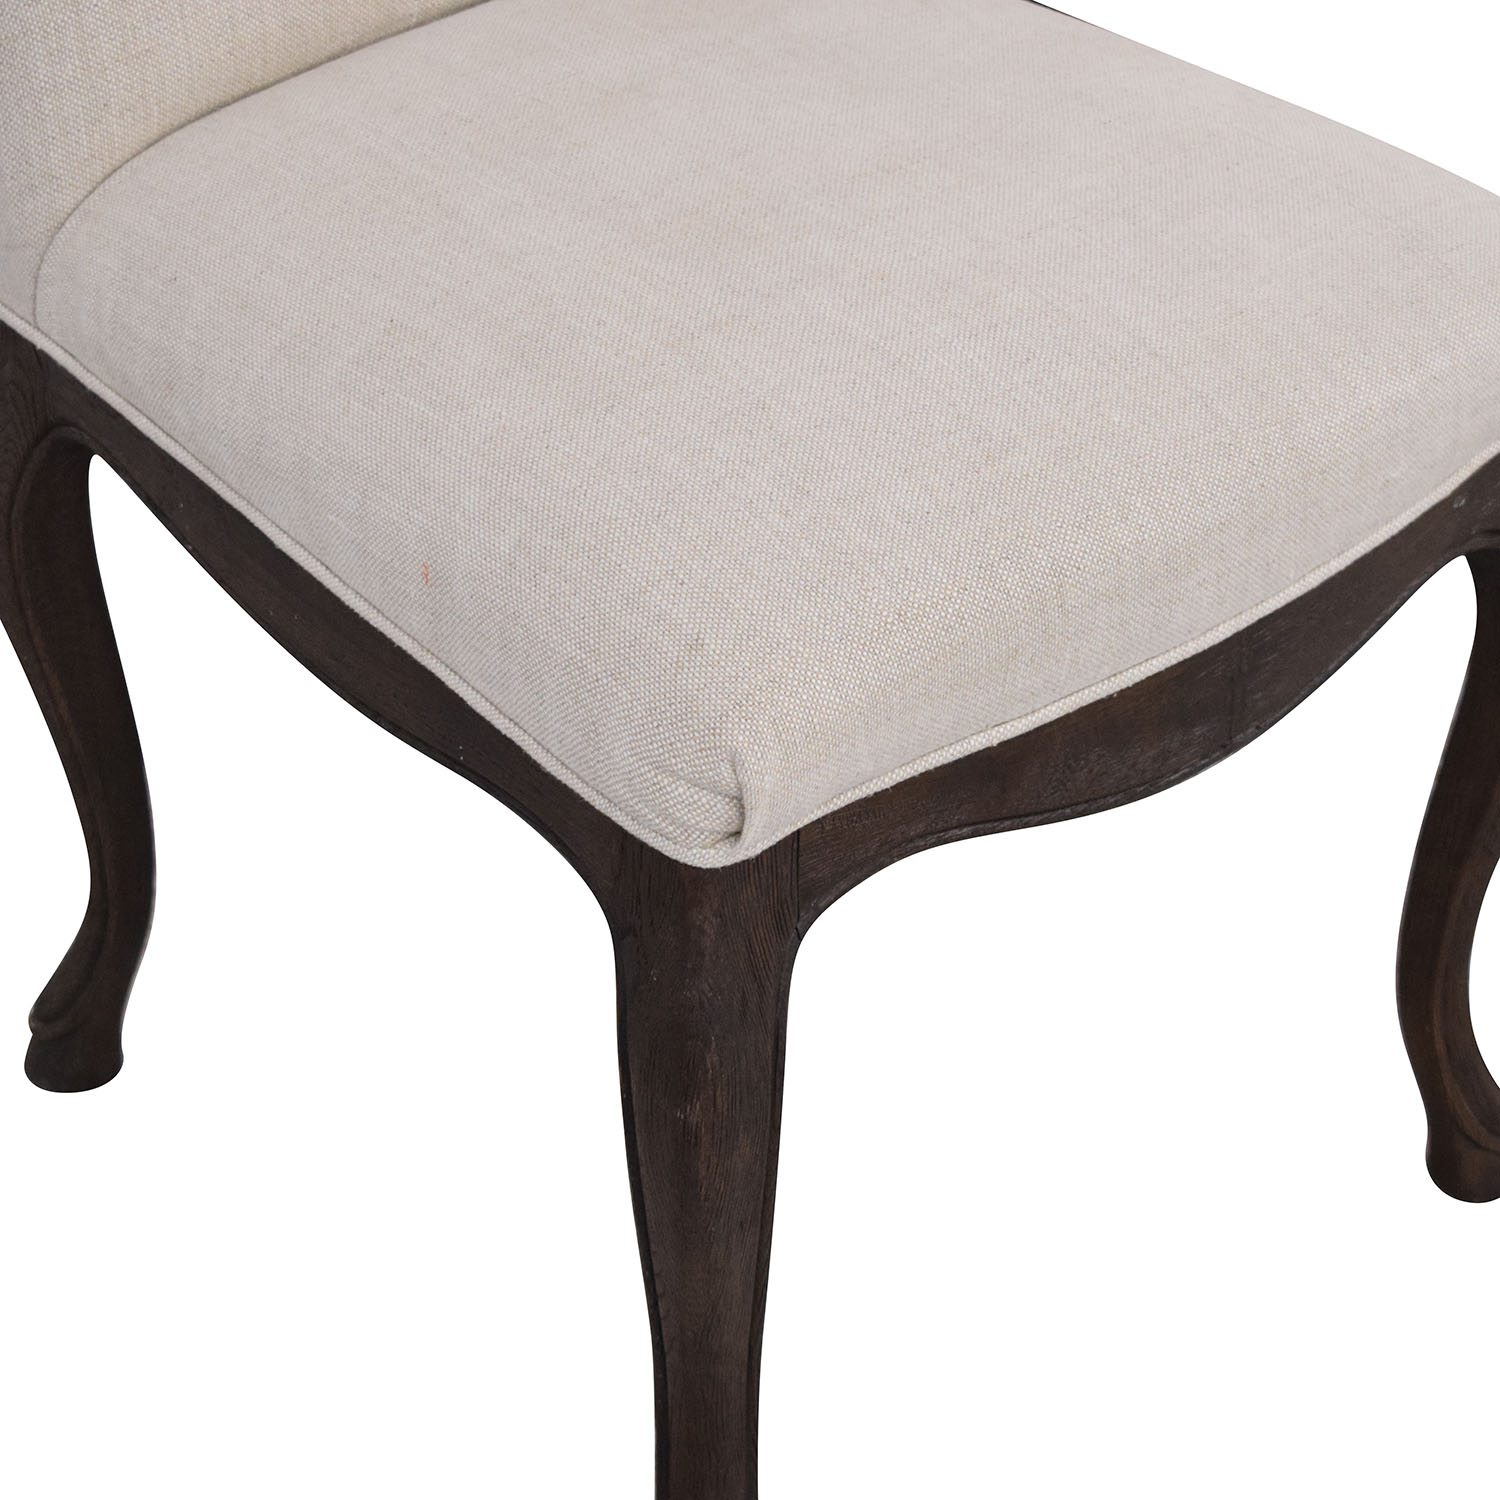 Restoration Hardware Restoration Hardware Louis XV Cabriole Chairs off white and dark brown